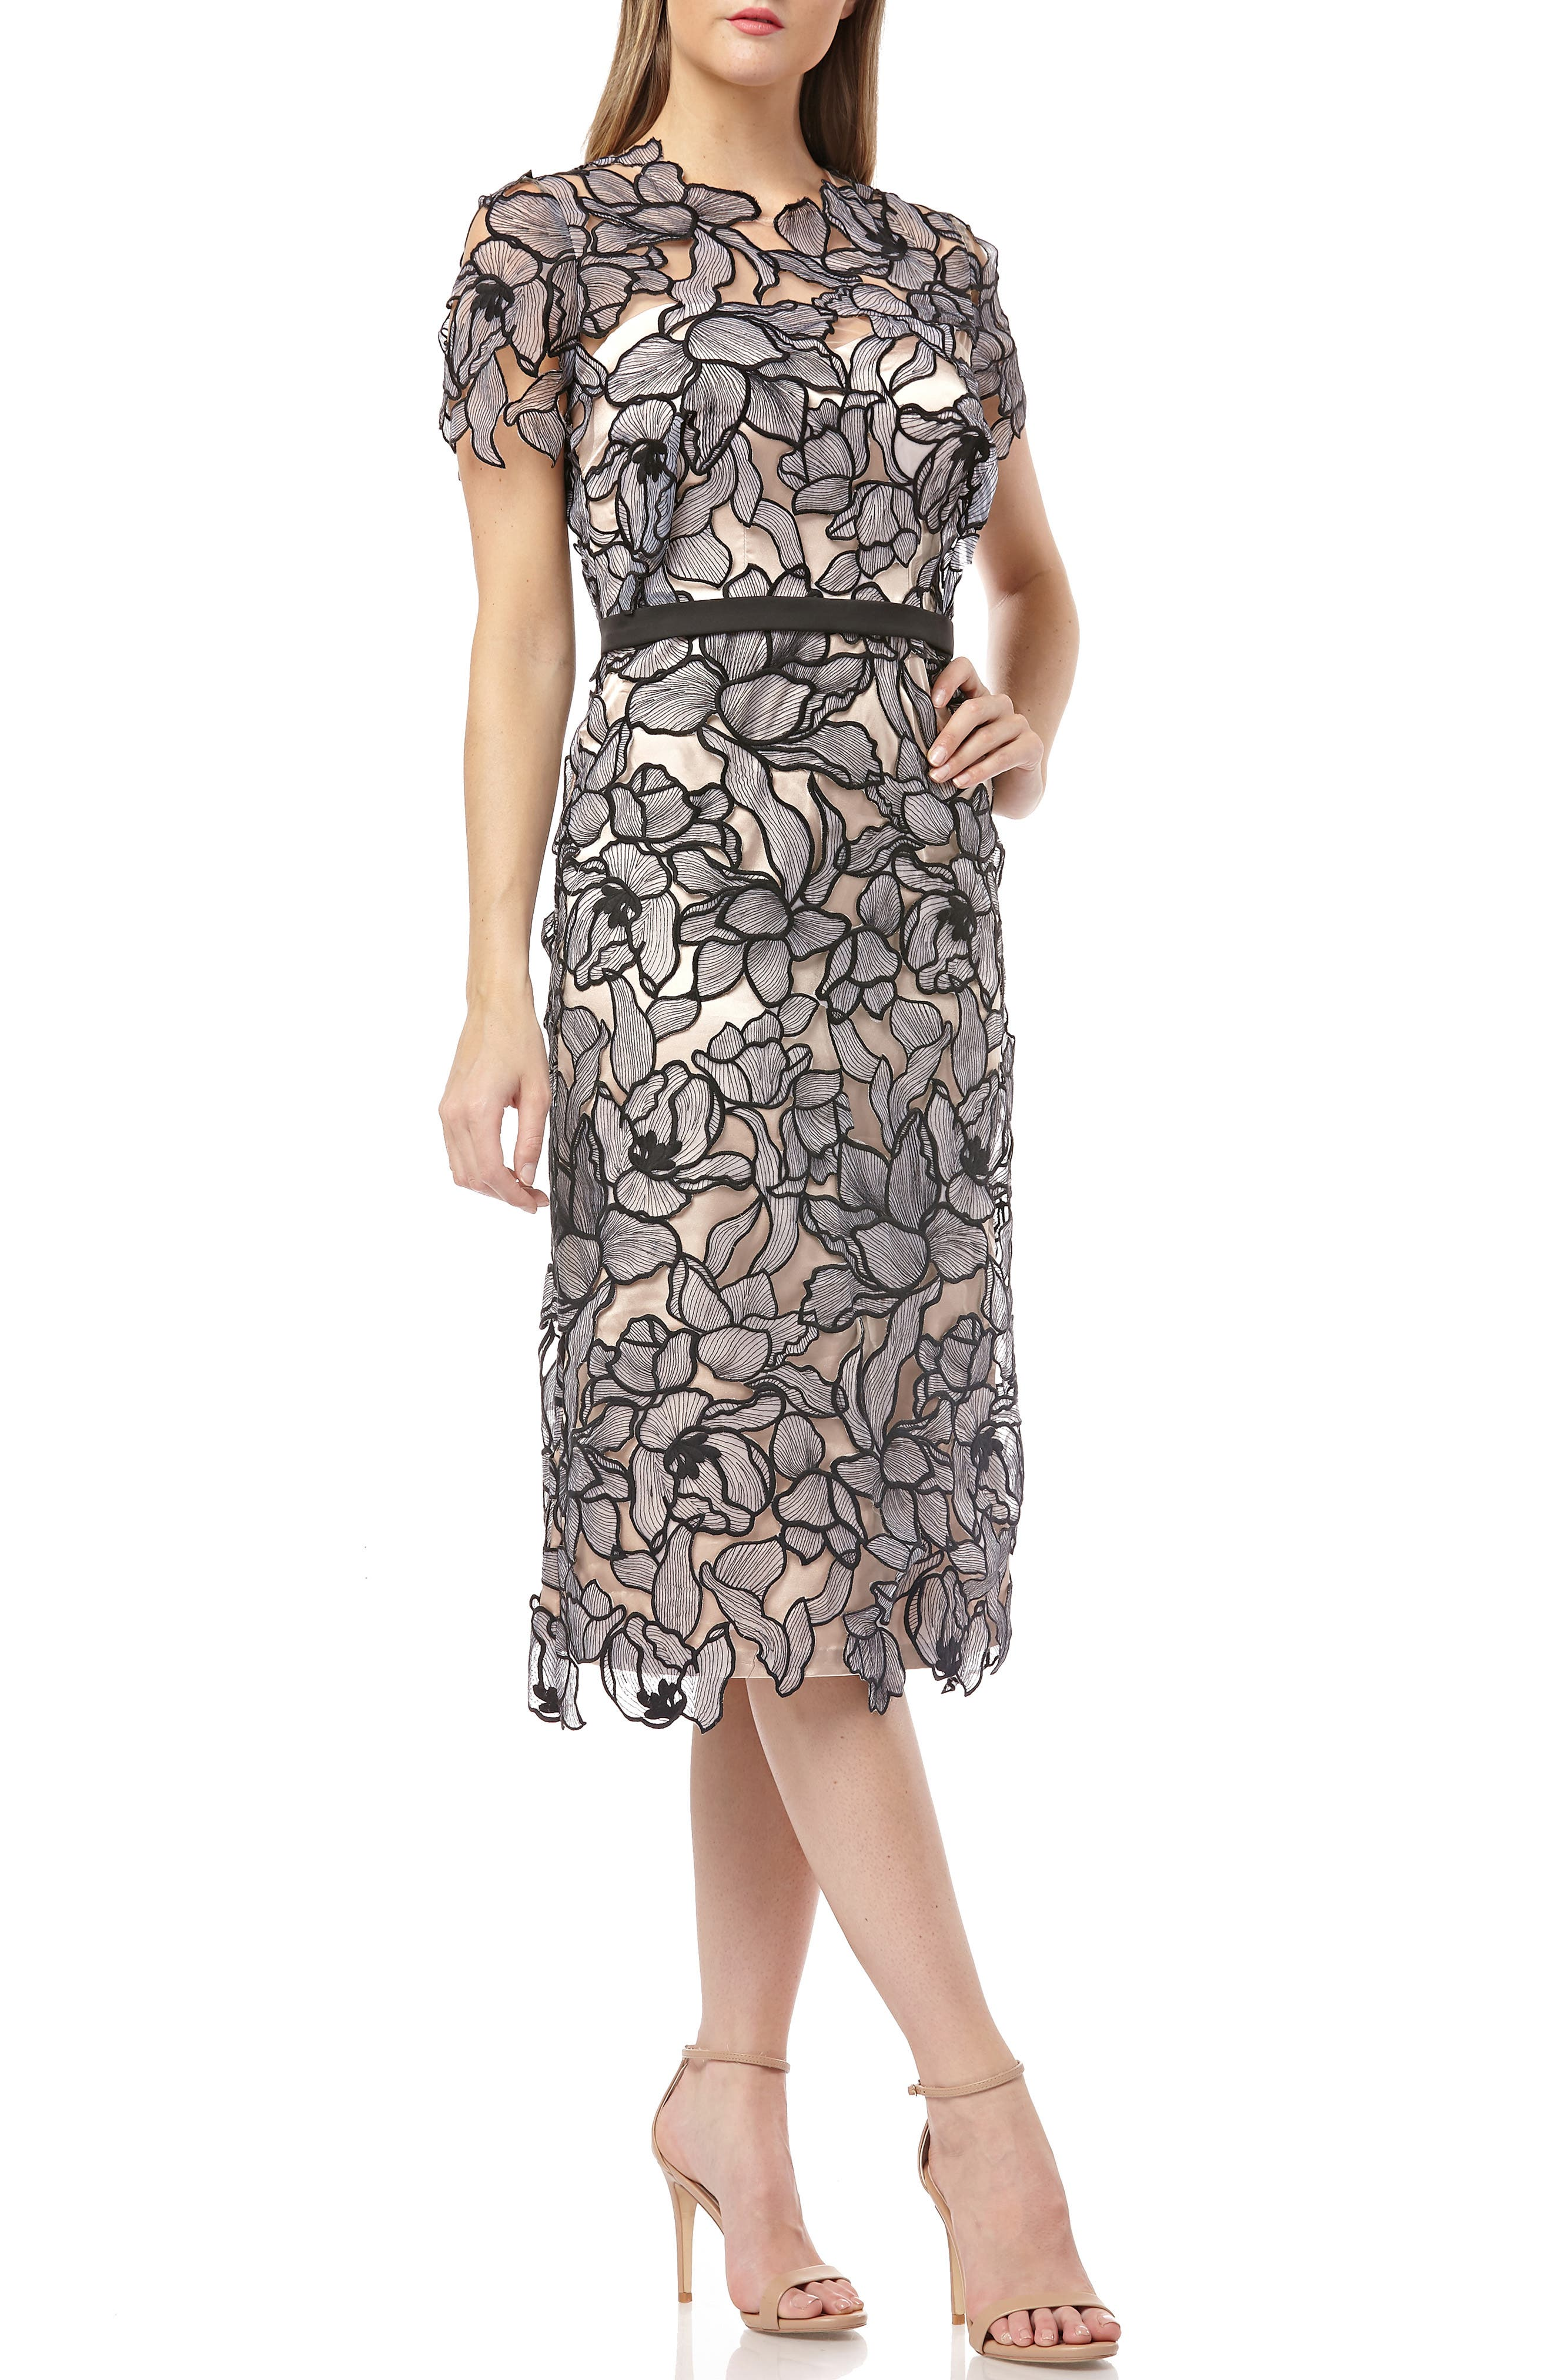 Js Collections Embroidered Lace Midi Dress, Black